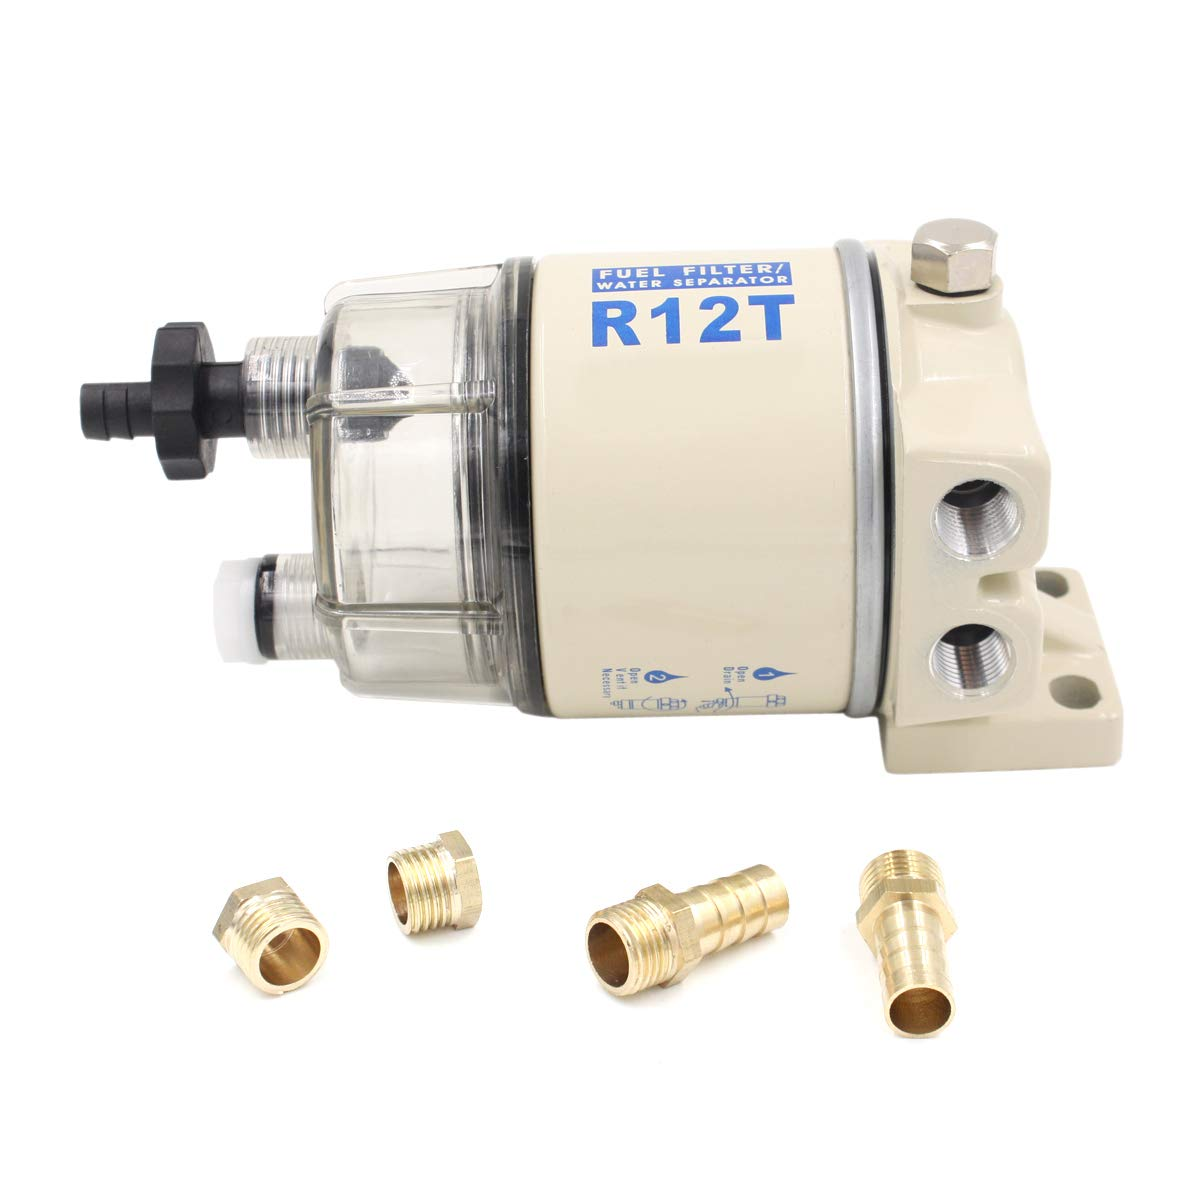 R12T Fuel Filter Water Separator 120AT NPT ZG1//4-19 Automotive Parts Combo